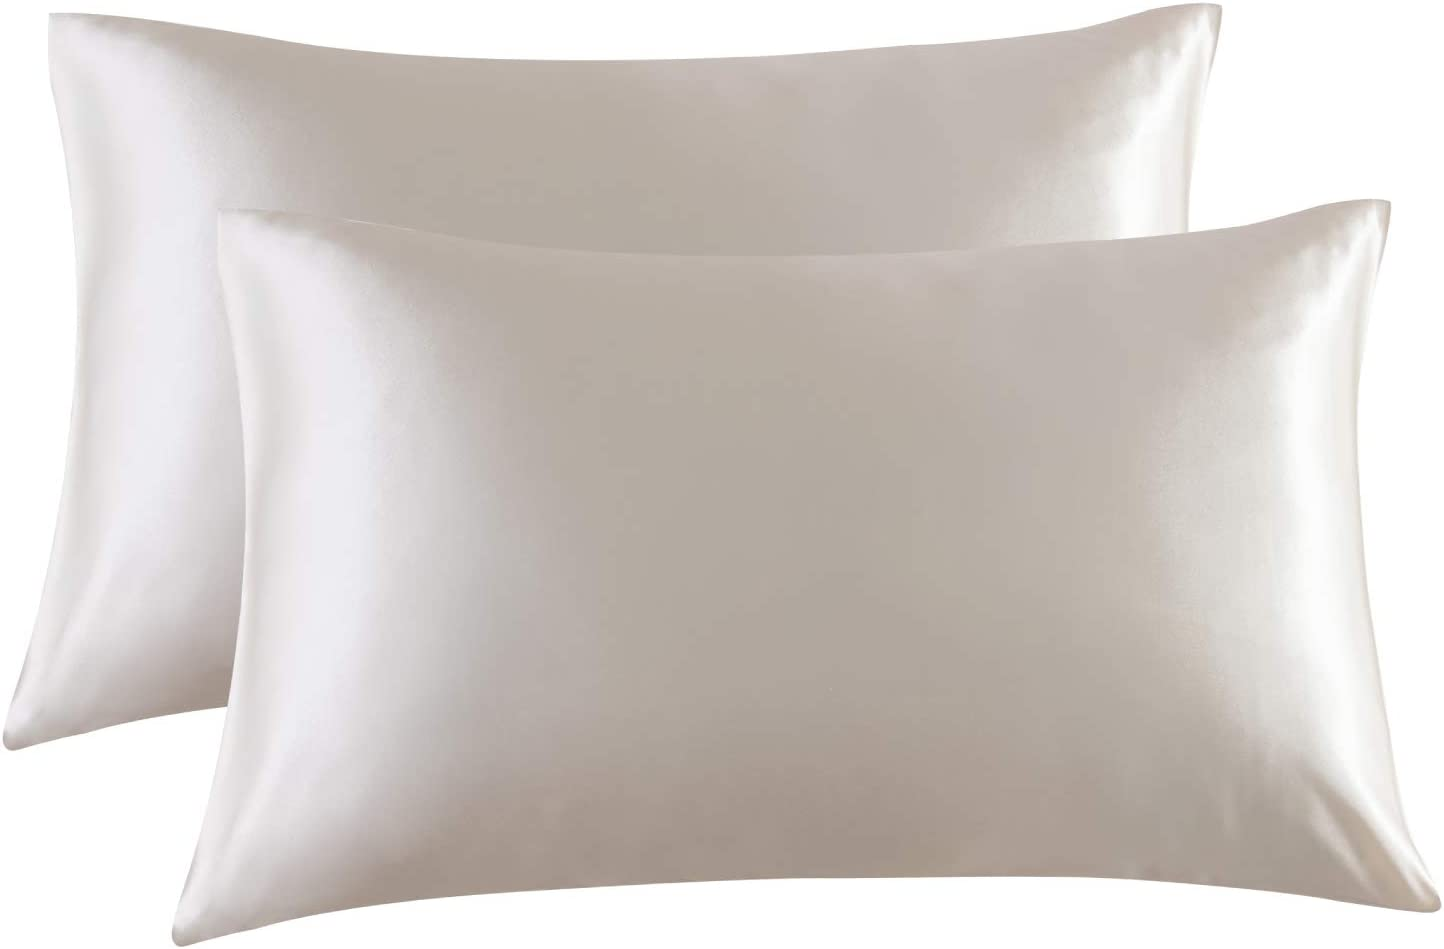 Bedsure Satin Pillowcase for Hair and Skin, 2-Pack - Standard Size (20x26 inches) Pillow Cases - Satin Pillow Covers with Envelope Closure, Beige